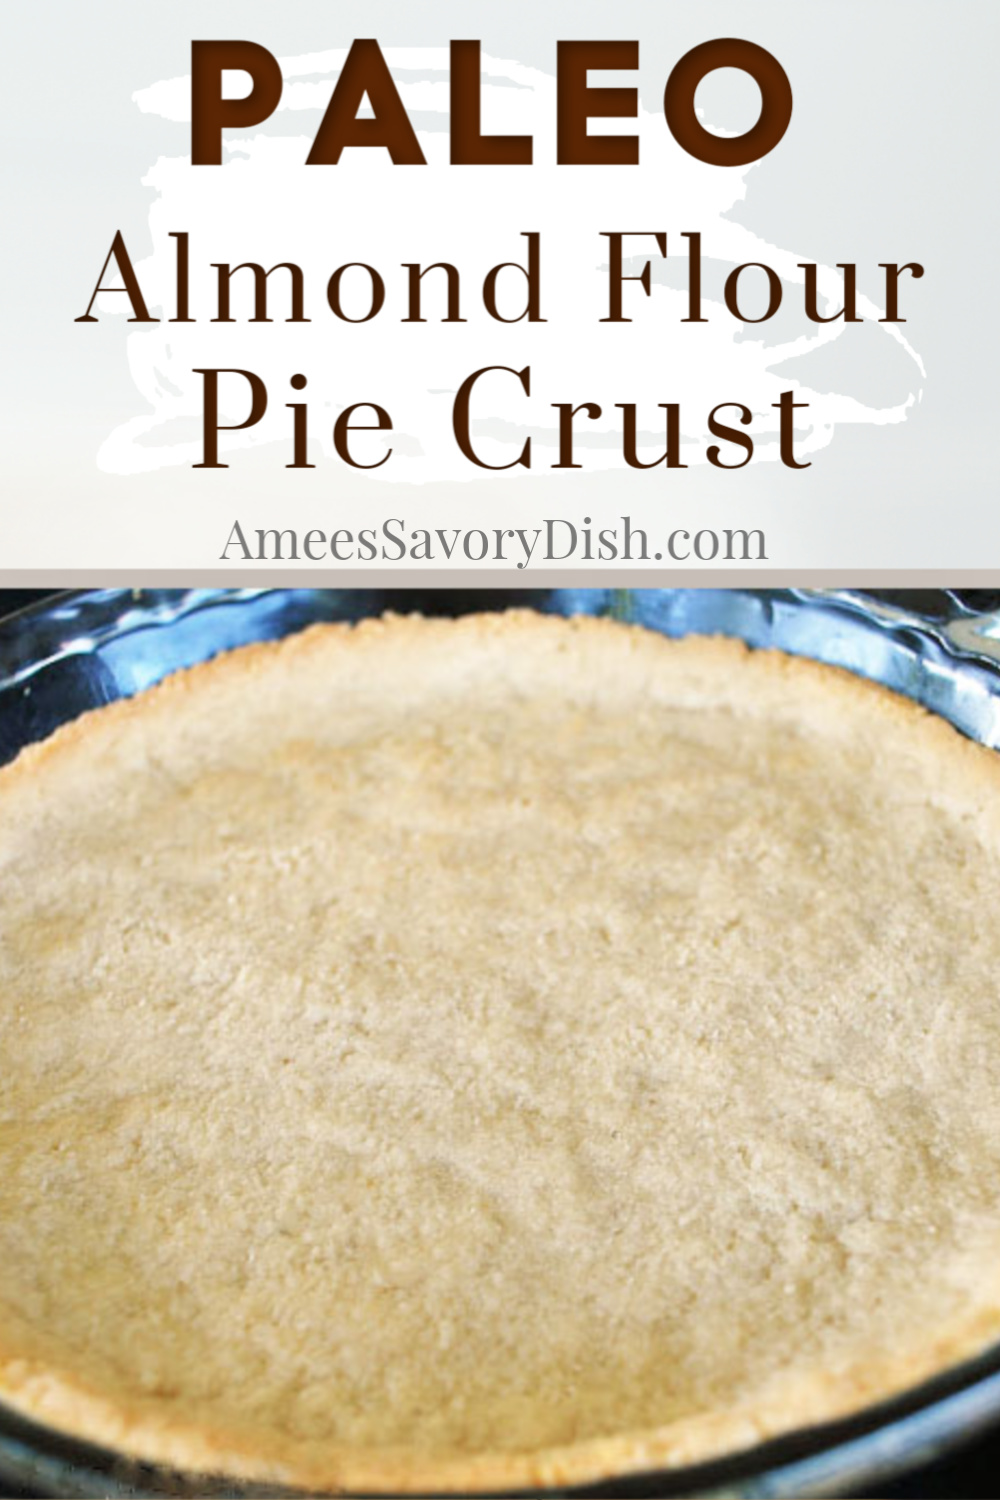 This easy almond flour pie crust is a grain-free pie crust to use for your favorite pie recipes.   This paleo diet-friendly pie crust recipe uses a combination of almond flour and unsweetened coconut and tastes delicious! #grainfreecrust #paleopiecrust #almondflourpiecrust via @Ameessavorydish